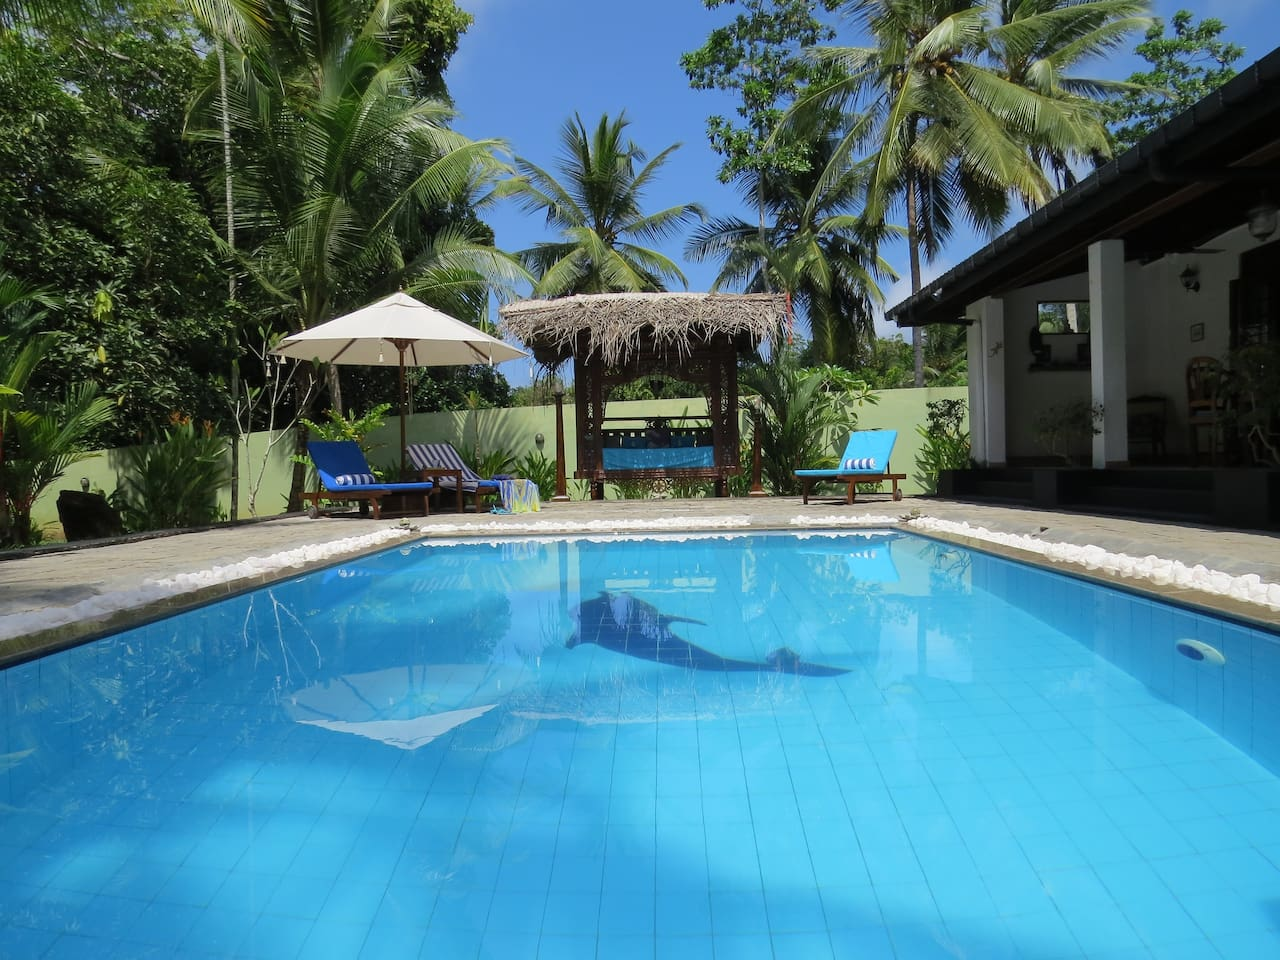 Villa Sapphire - tropical luxury home with AC, sleeping up to 6 plus an infant. 3 en suite power shower rooms